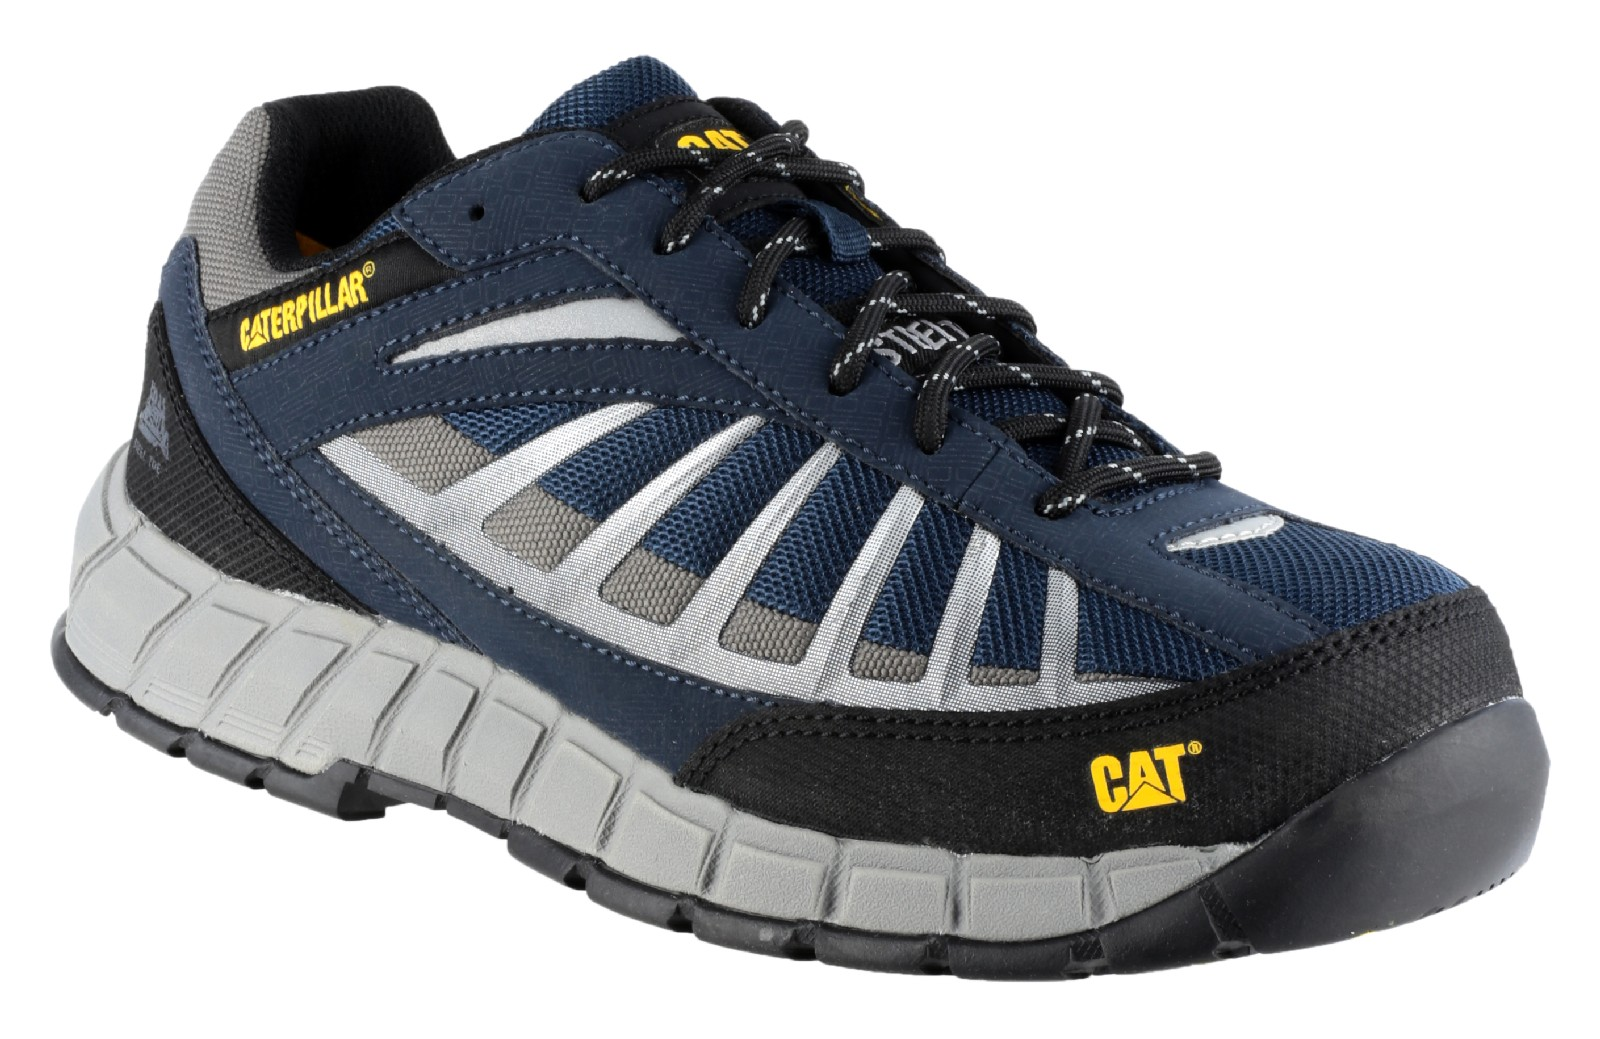 new product b4780 7eb6e Caterpillar Infrastructure Safety Trainer Sneakers